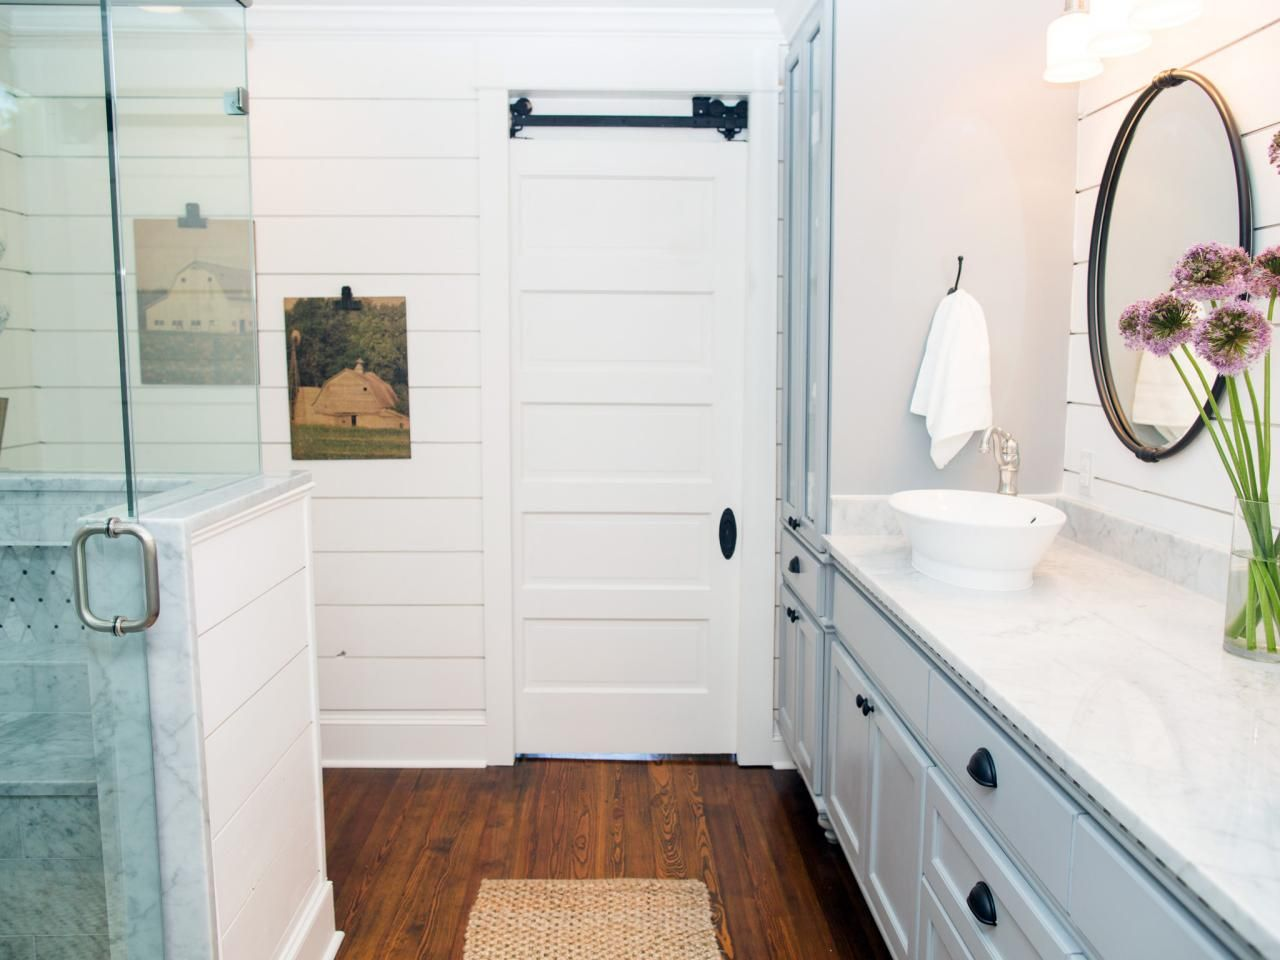 Bathroom Needs 5 things every 'fixer upper'-inspired farmhouse bathroom needs